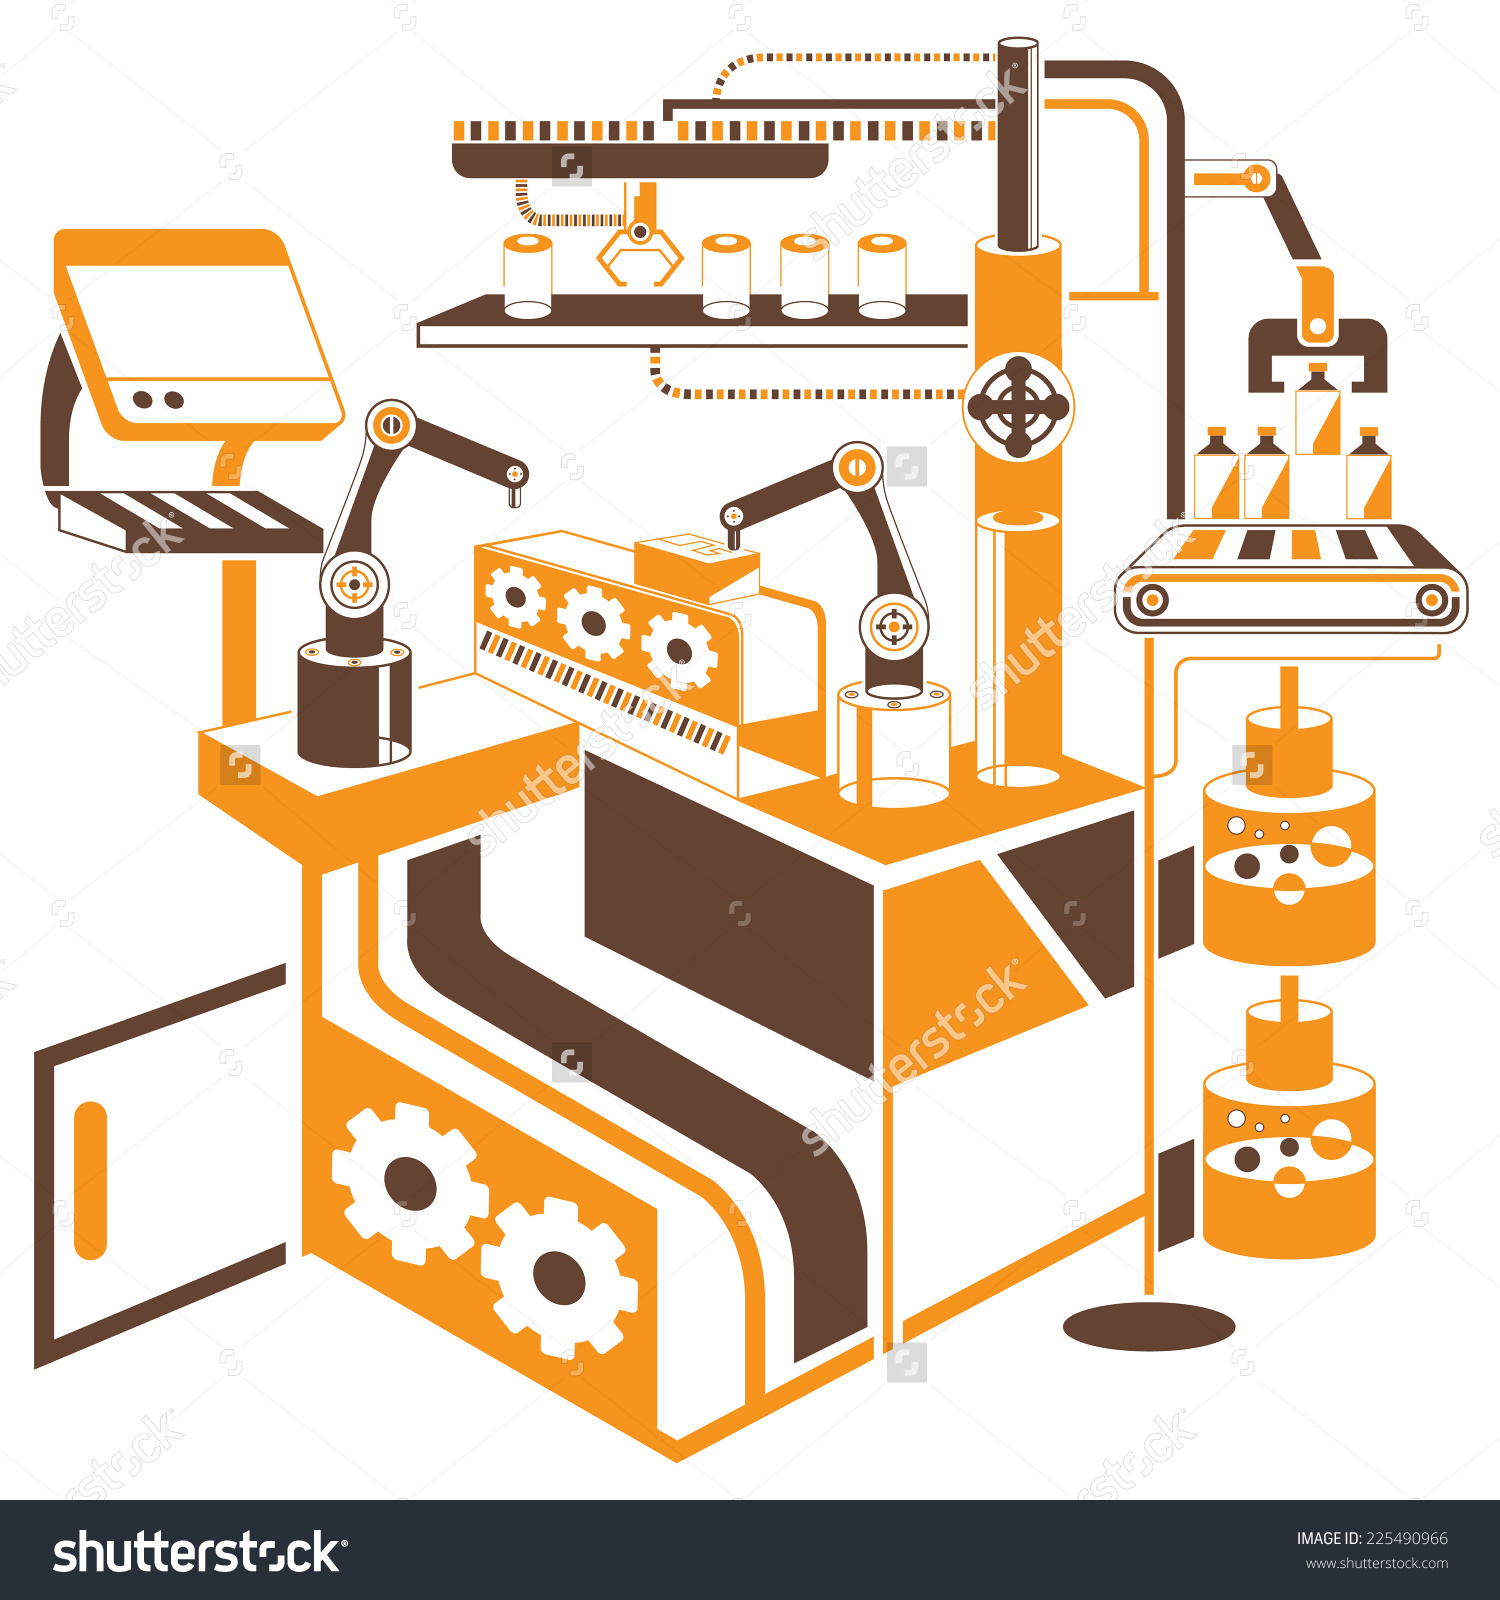 Computer Controlled Automated Manufacturing Process Industrial.